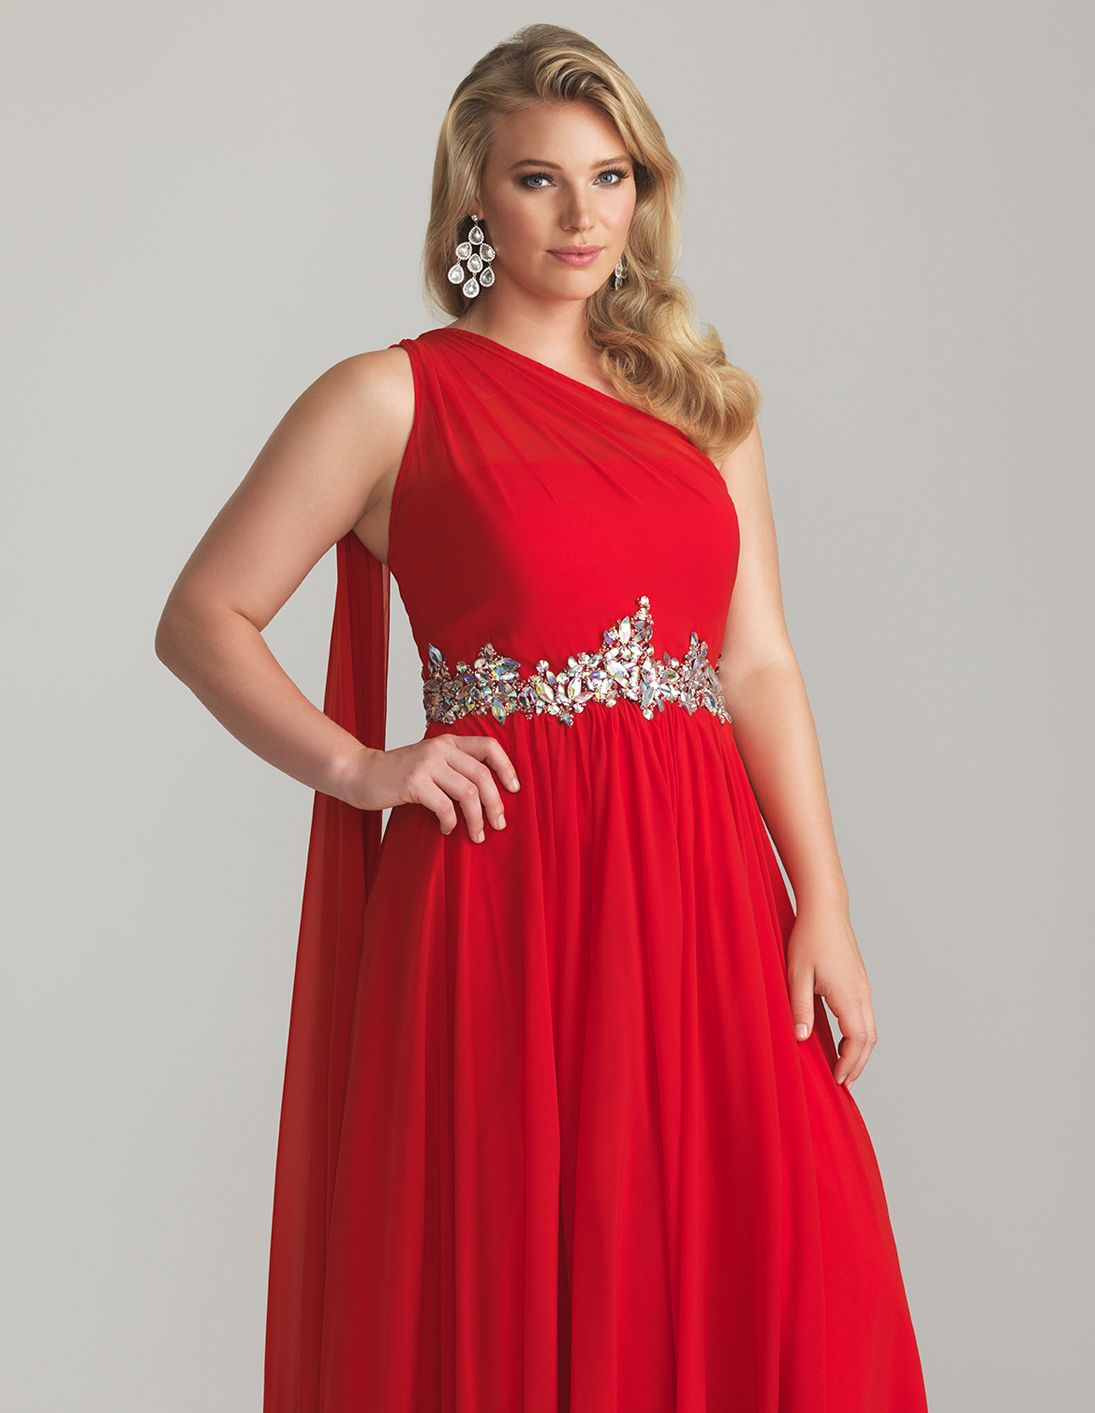 Size 6 cocktail dresses uk forecast